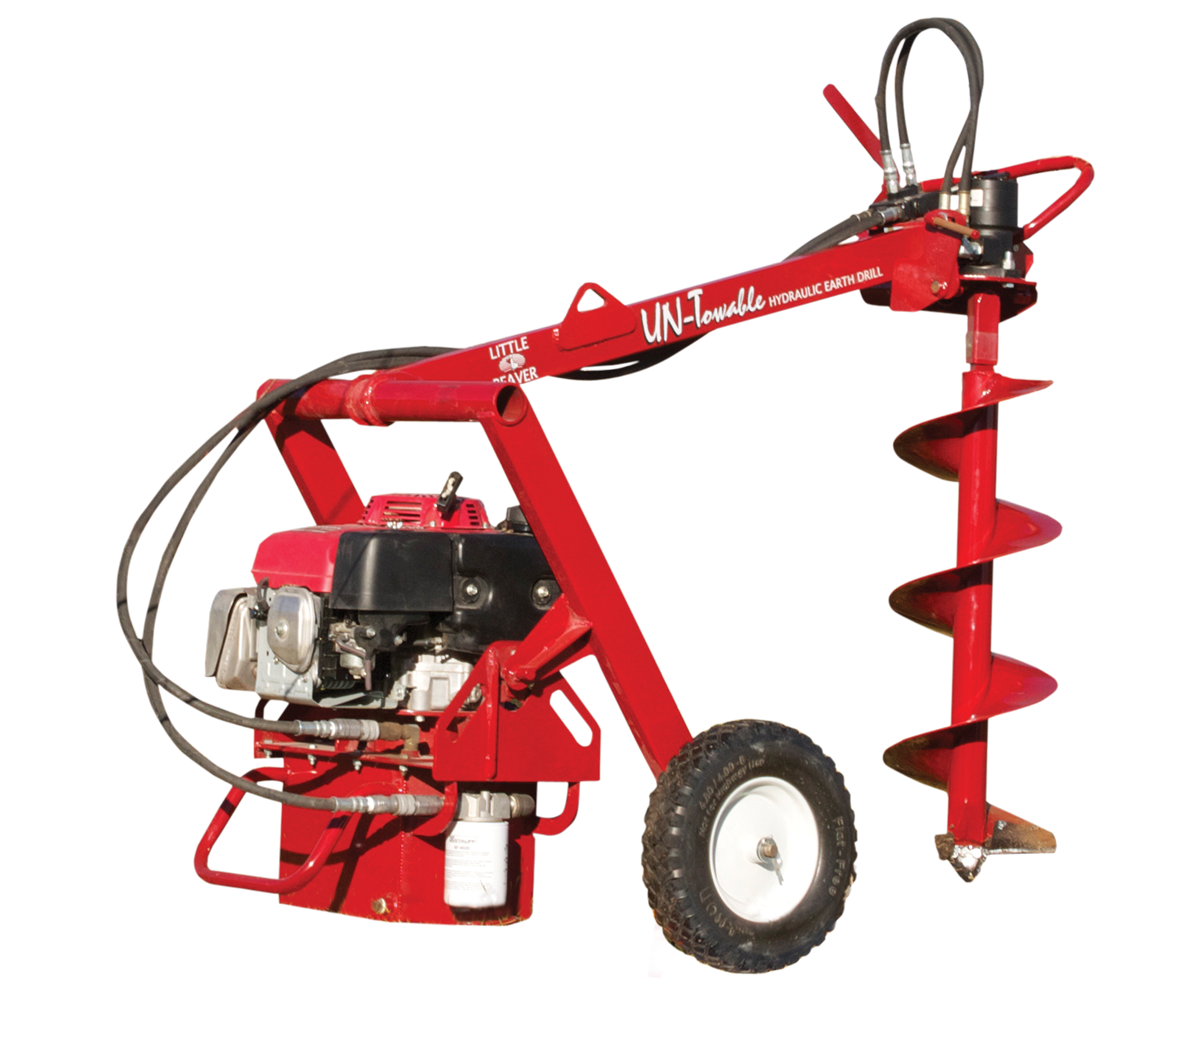 UN-Towable Hydraulic Earth Drill